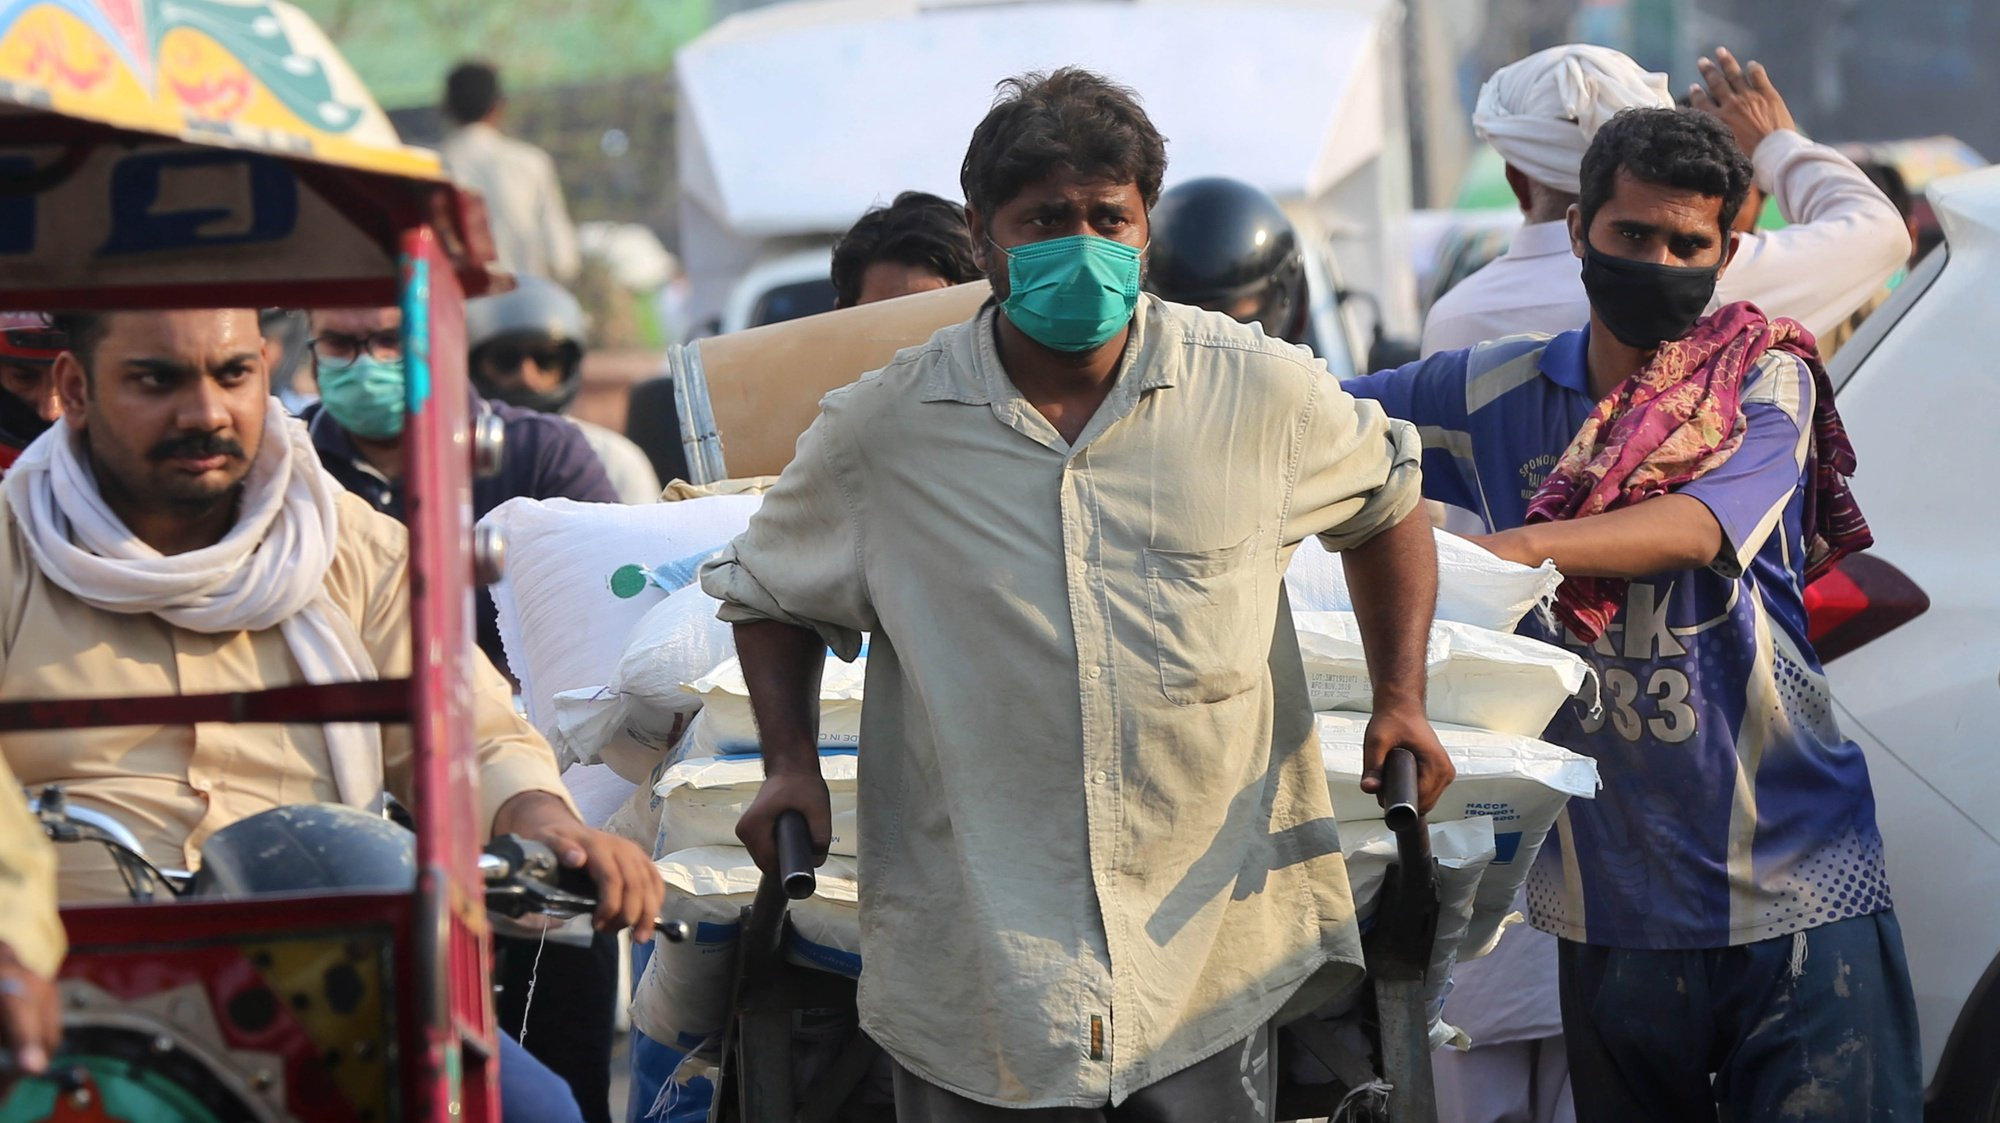 epa08467482 A Pakistani laborer transports products from a closed market during partial lockdown in Lahore, Pakistan, 05 June 2020. Countries around the world are taking increased measures to stem the widespread of the SARS-CoV-2 coronavirus which causes the Covid-19 disease.  EPA/RAHAT DAR